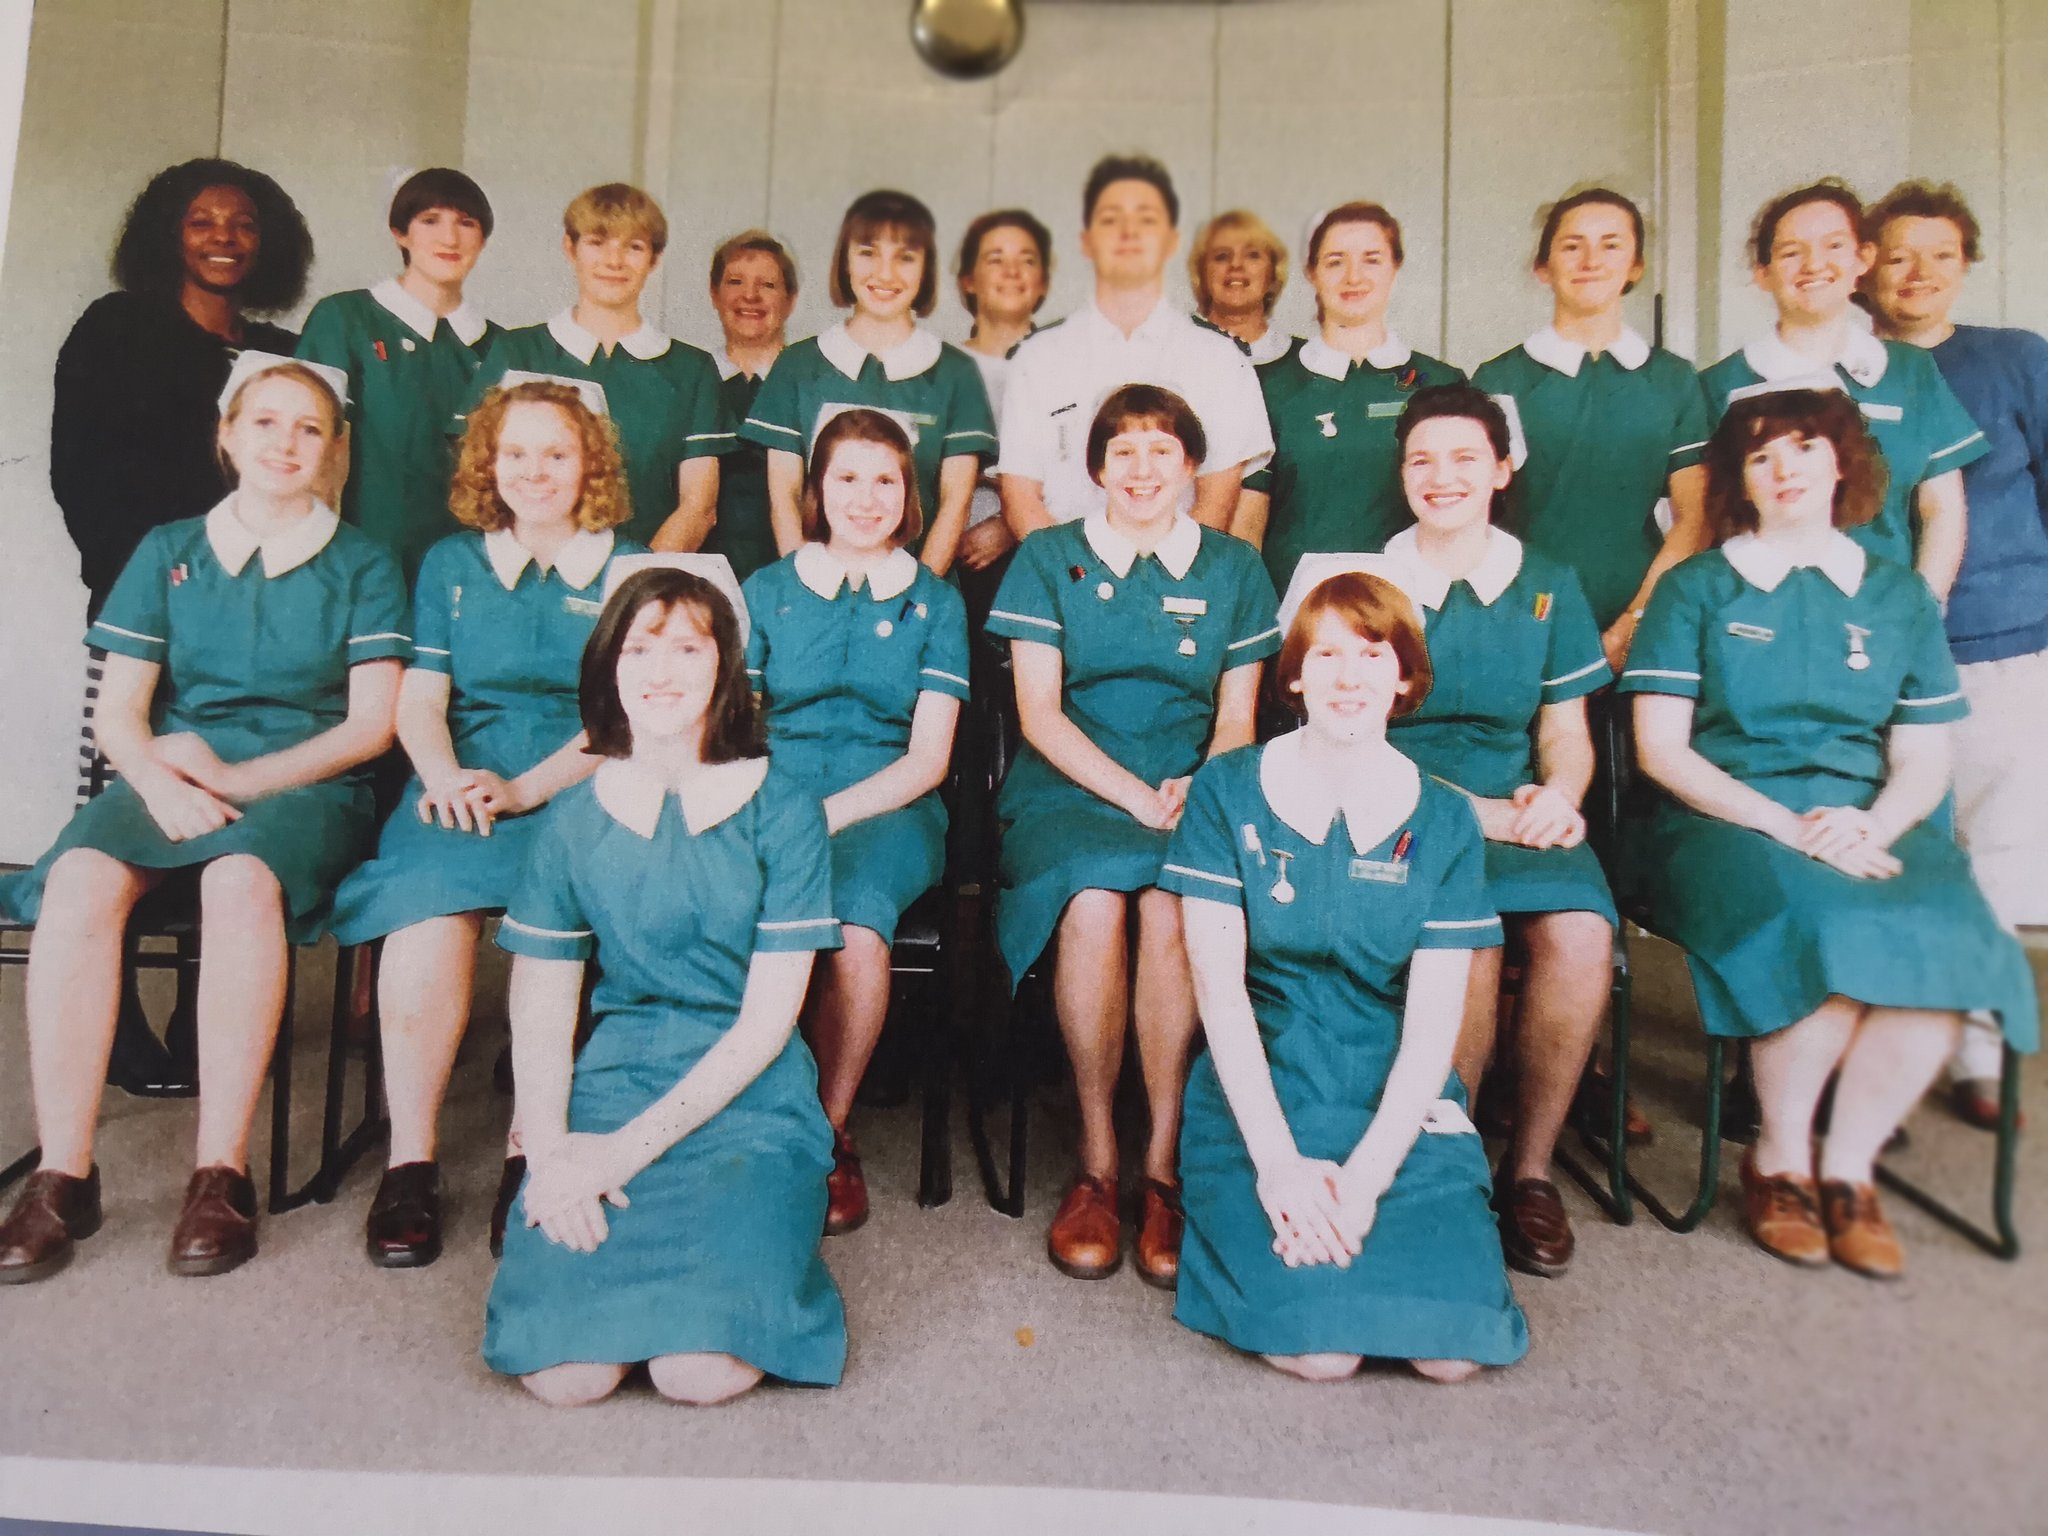 We were living the dream in 1990 with these uniforms! Happy 70th birthday, NHS, you wonderful thing!